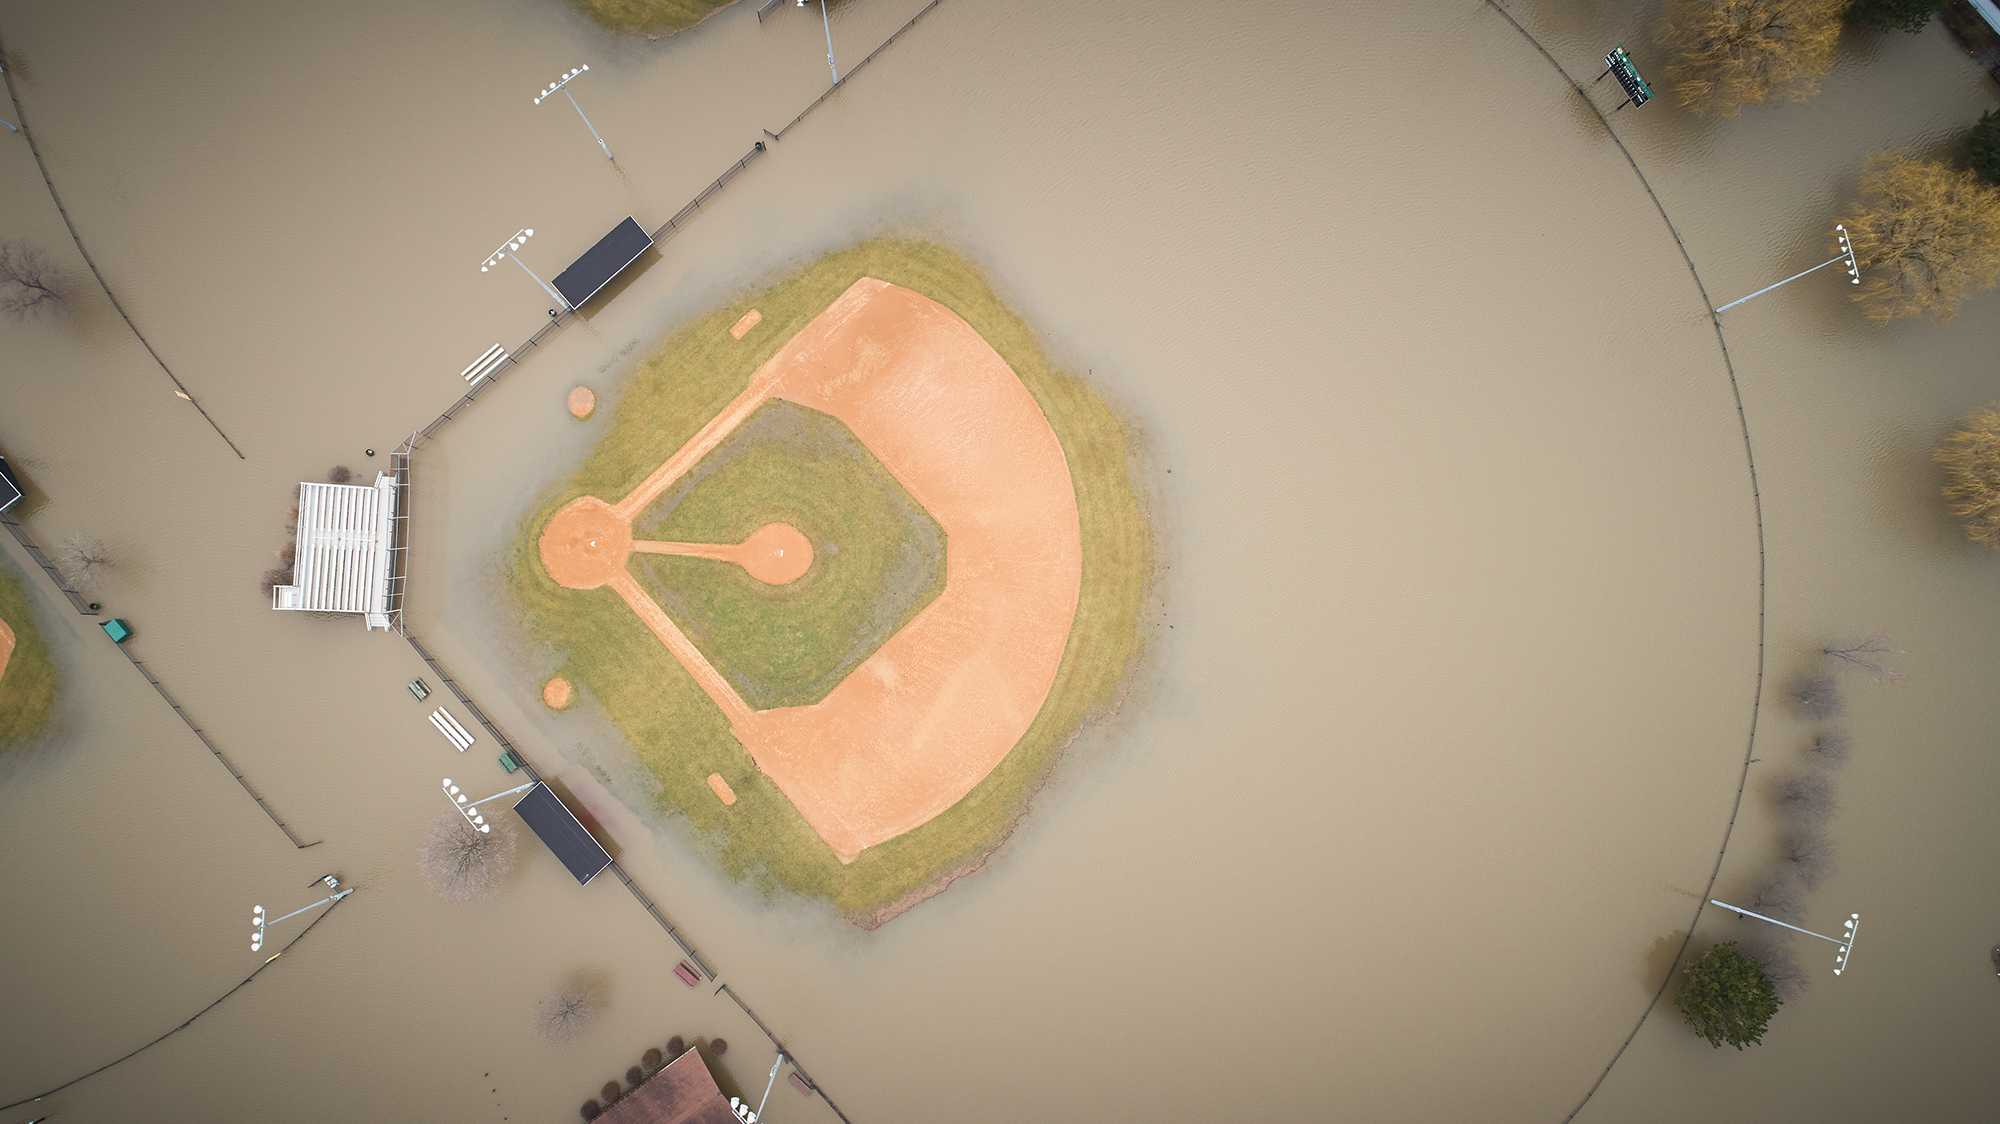 Flooded baseball diamond from above.